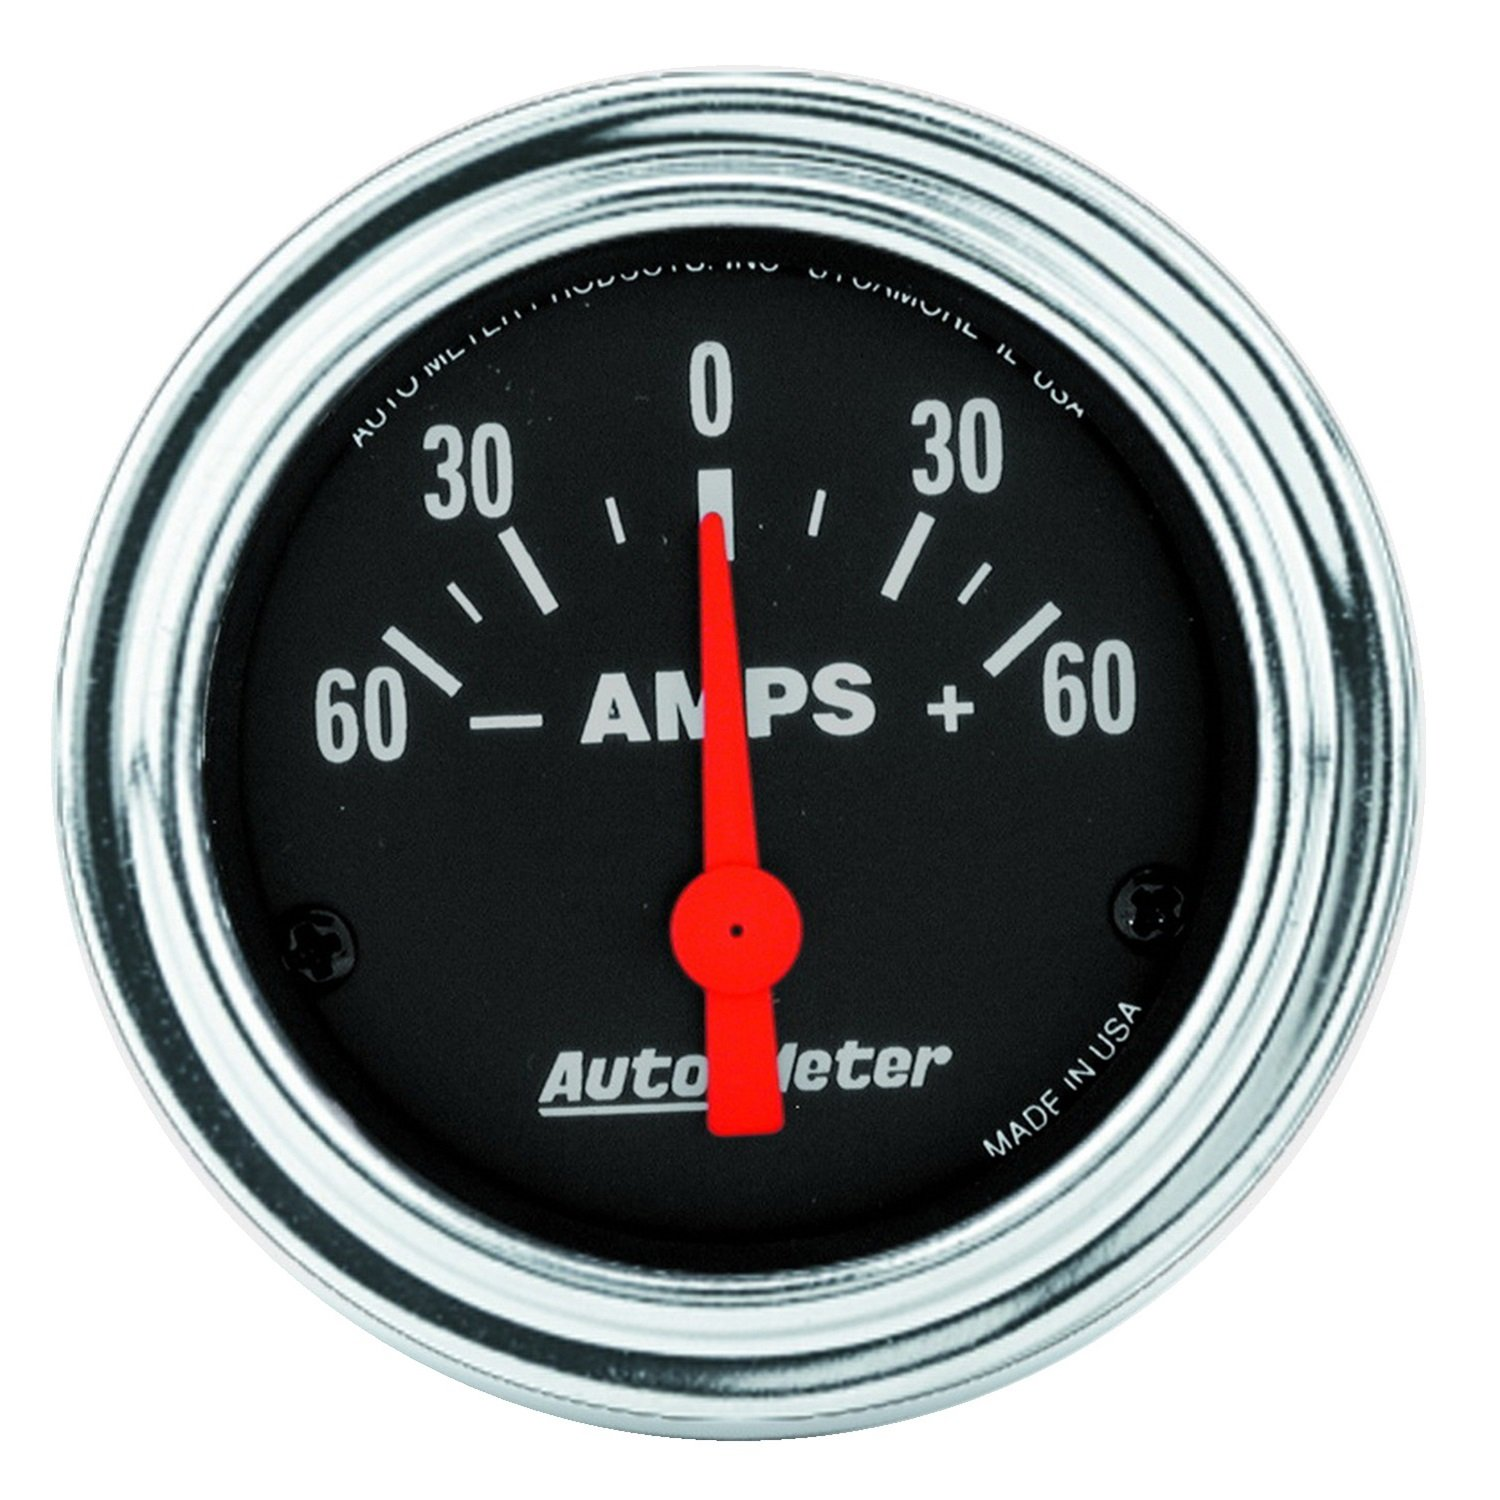 Auto Meter 2586 Traditional Chrome 2-1/16' 60-0-60 amps Short Sweep Electric Ammeter Gauge